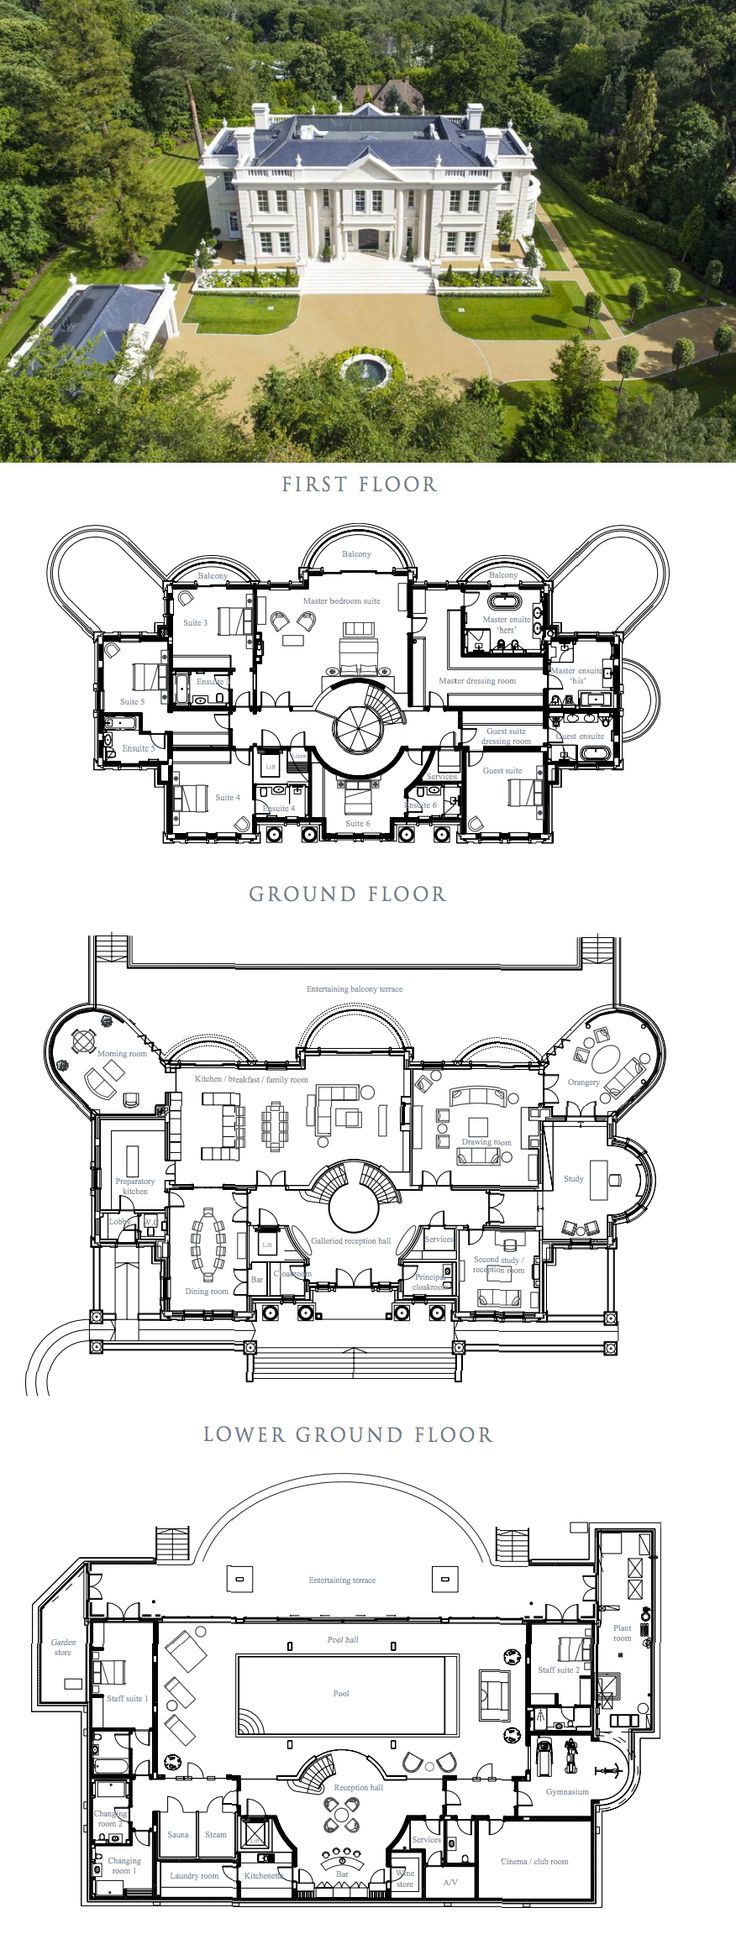 The Ramparts – A Stately Newly Built Mansion In Surrey, England (FLOOR PLANS)